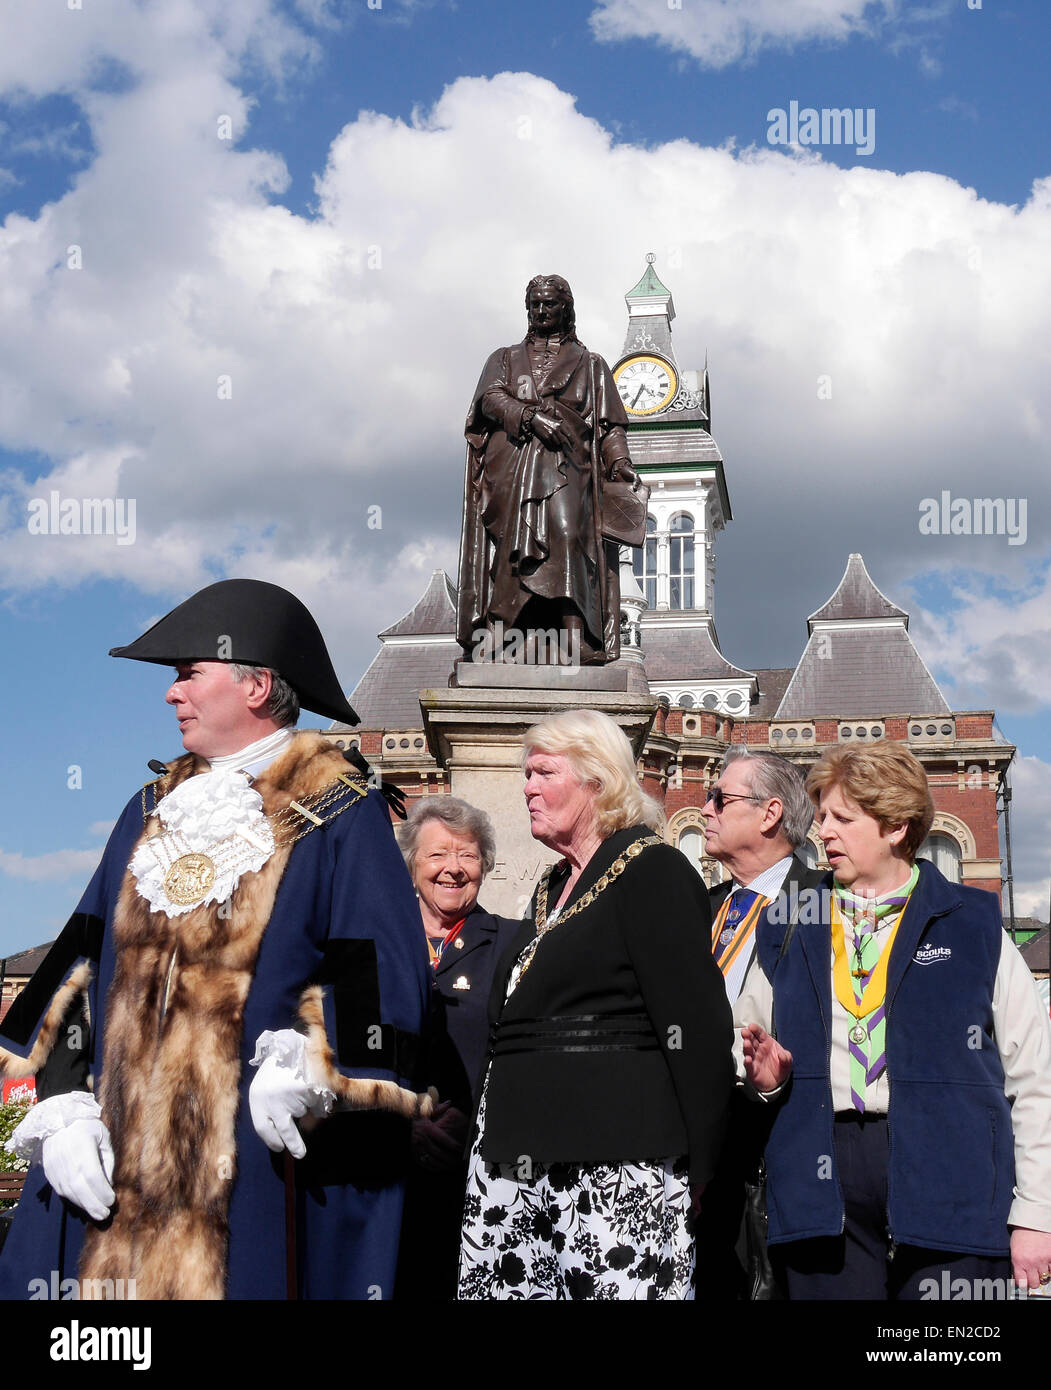 The Mayor of Grantham and dignitaries observing the march past on St. George's Day parade, Grantham, Lincolnshire, - Stock Image